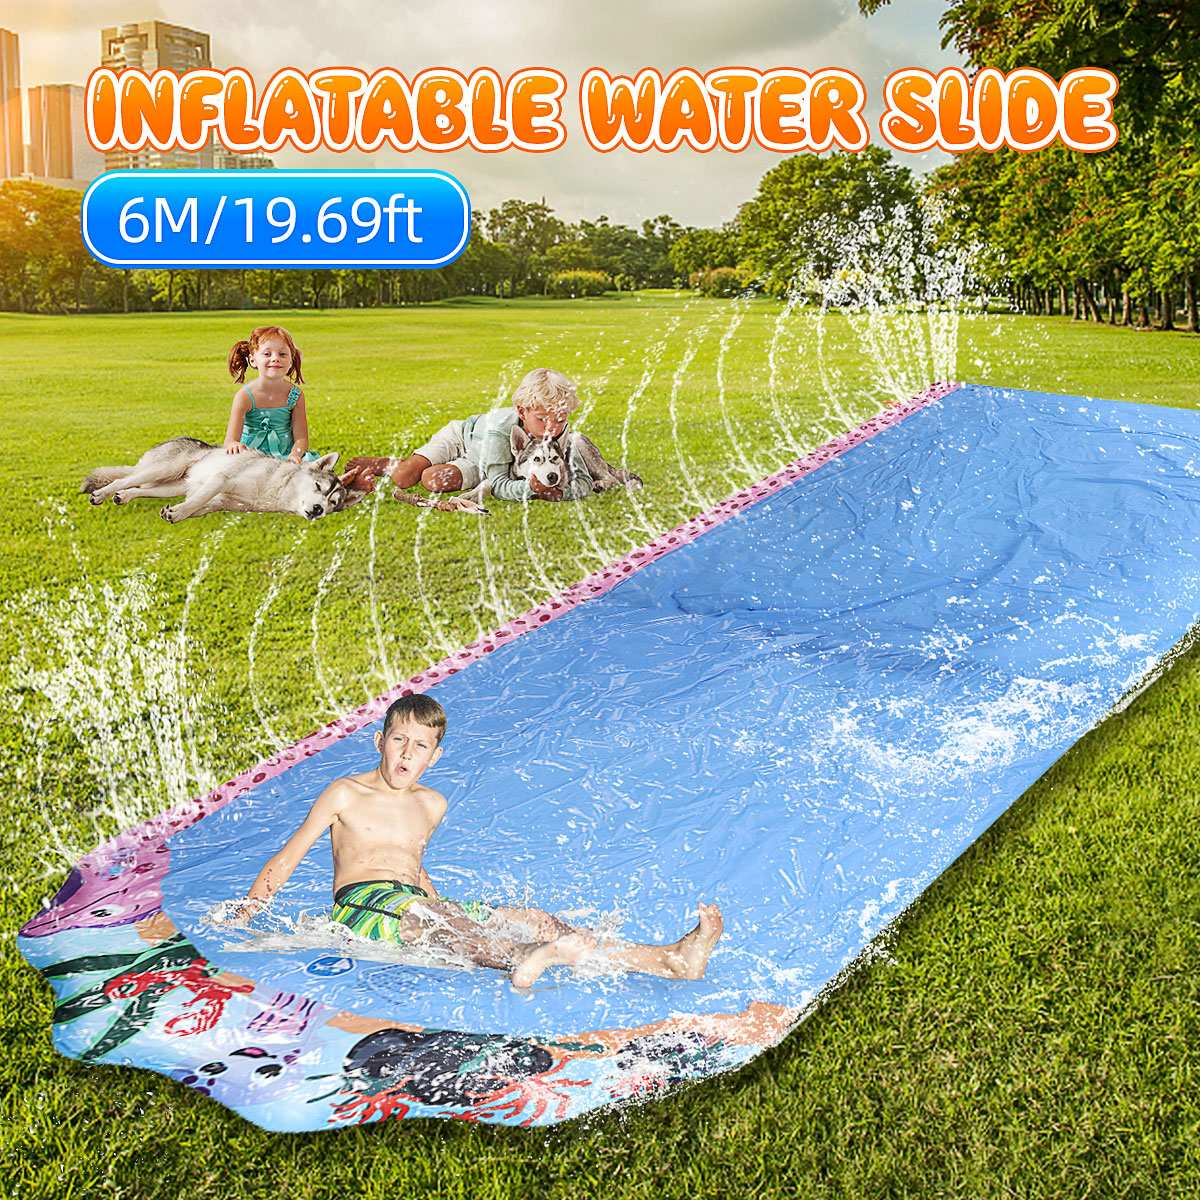 6M Giant Surfing Water Slide Fun Lawn Water Slides Pools For Kids Summer PVC Games Center Backyard Outdoor Adult Children Toys